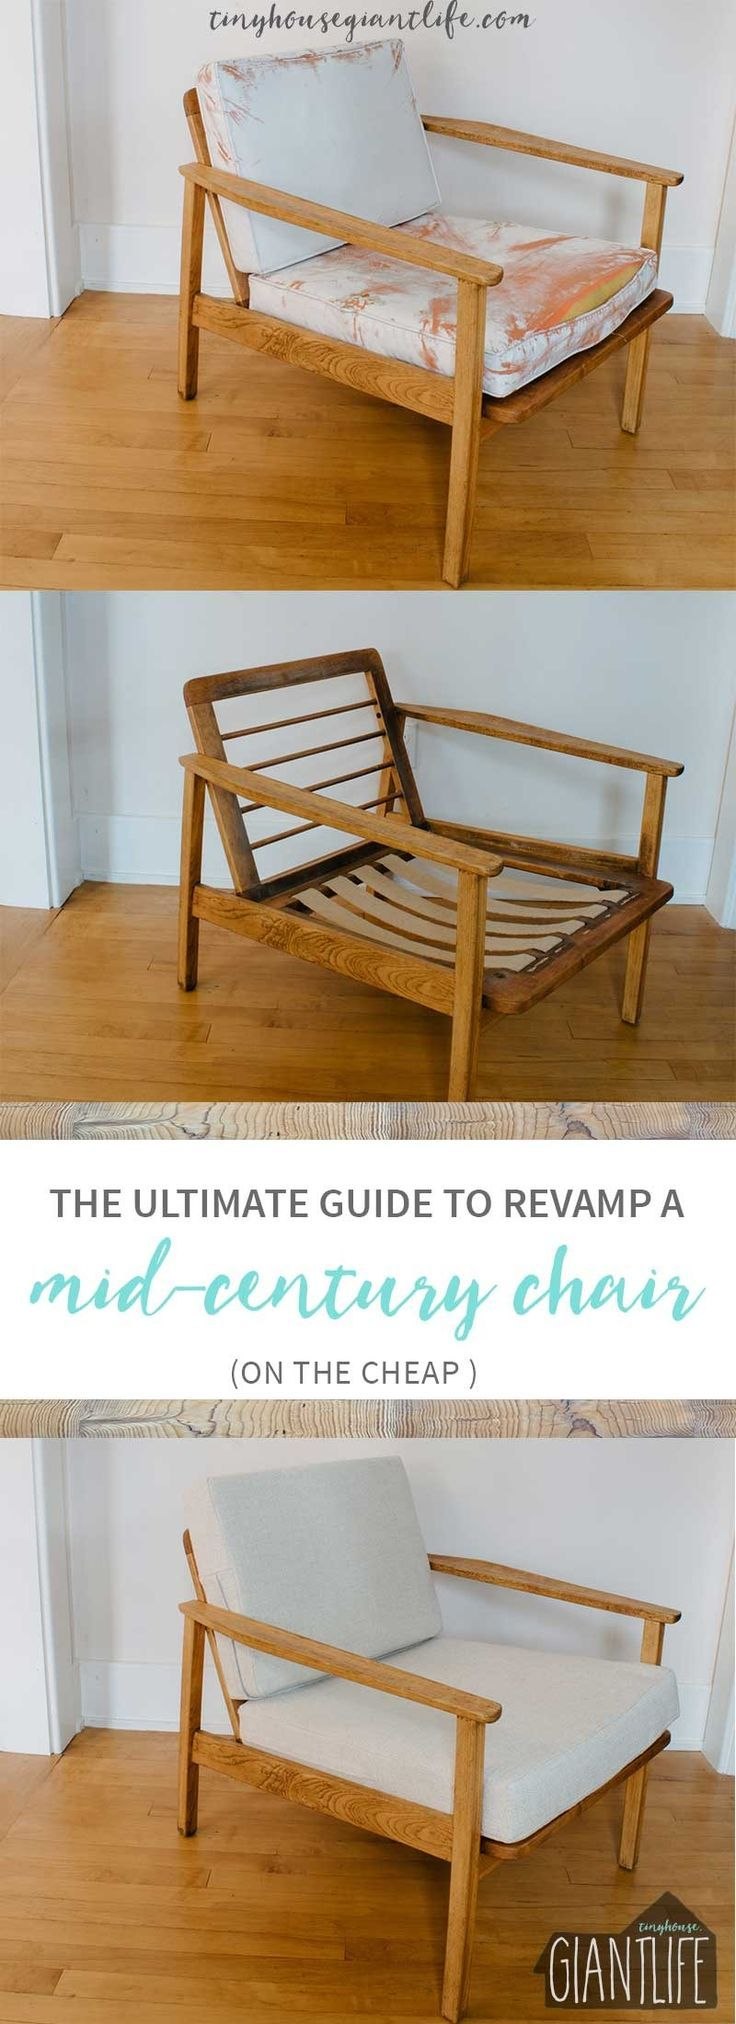 The Ultimate Guide To Revamp A Mid Century Chair On The Cheap